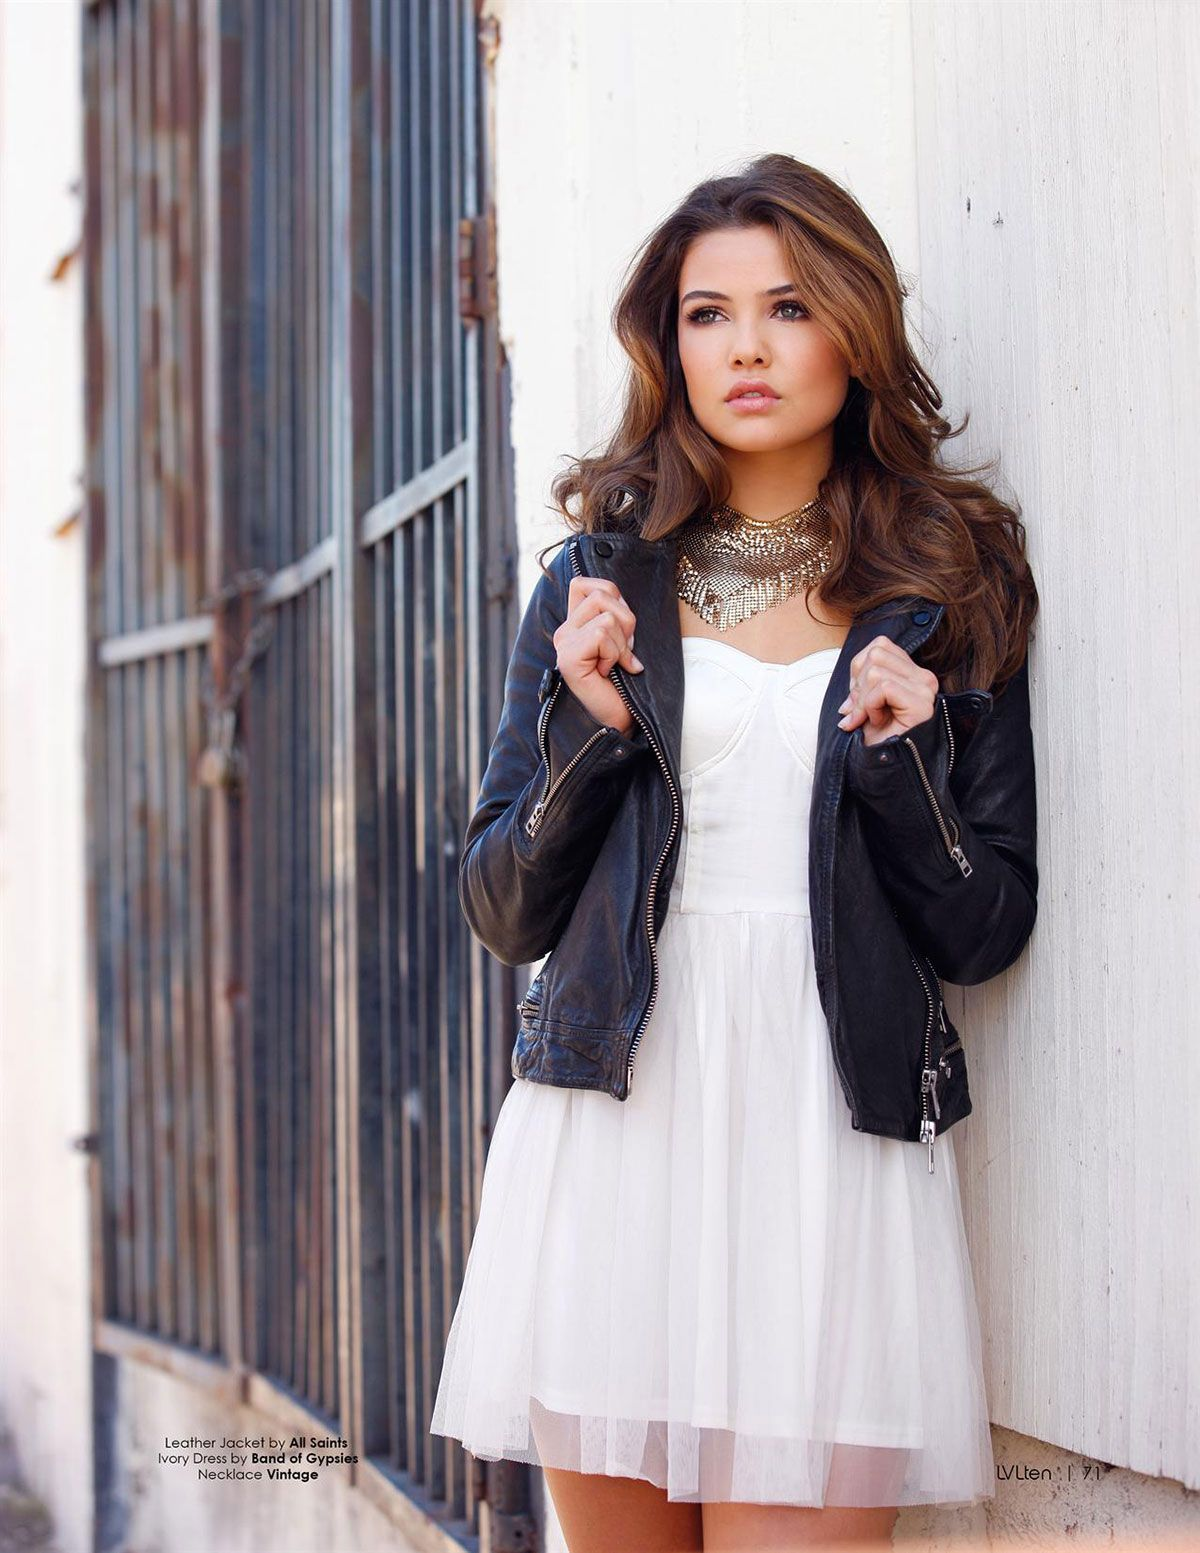 DANIELLE-CAMPBELL-in-LVLten-Magazine-Winter-2014-Issue